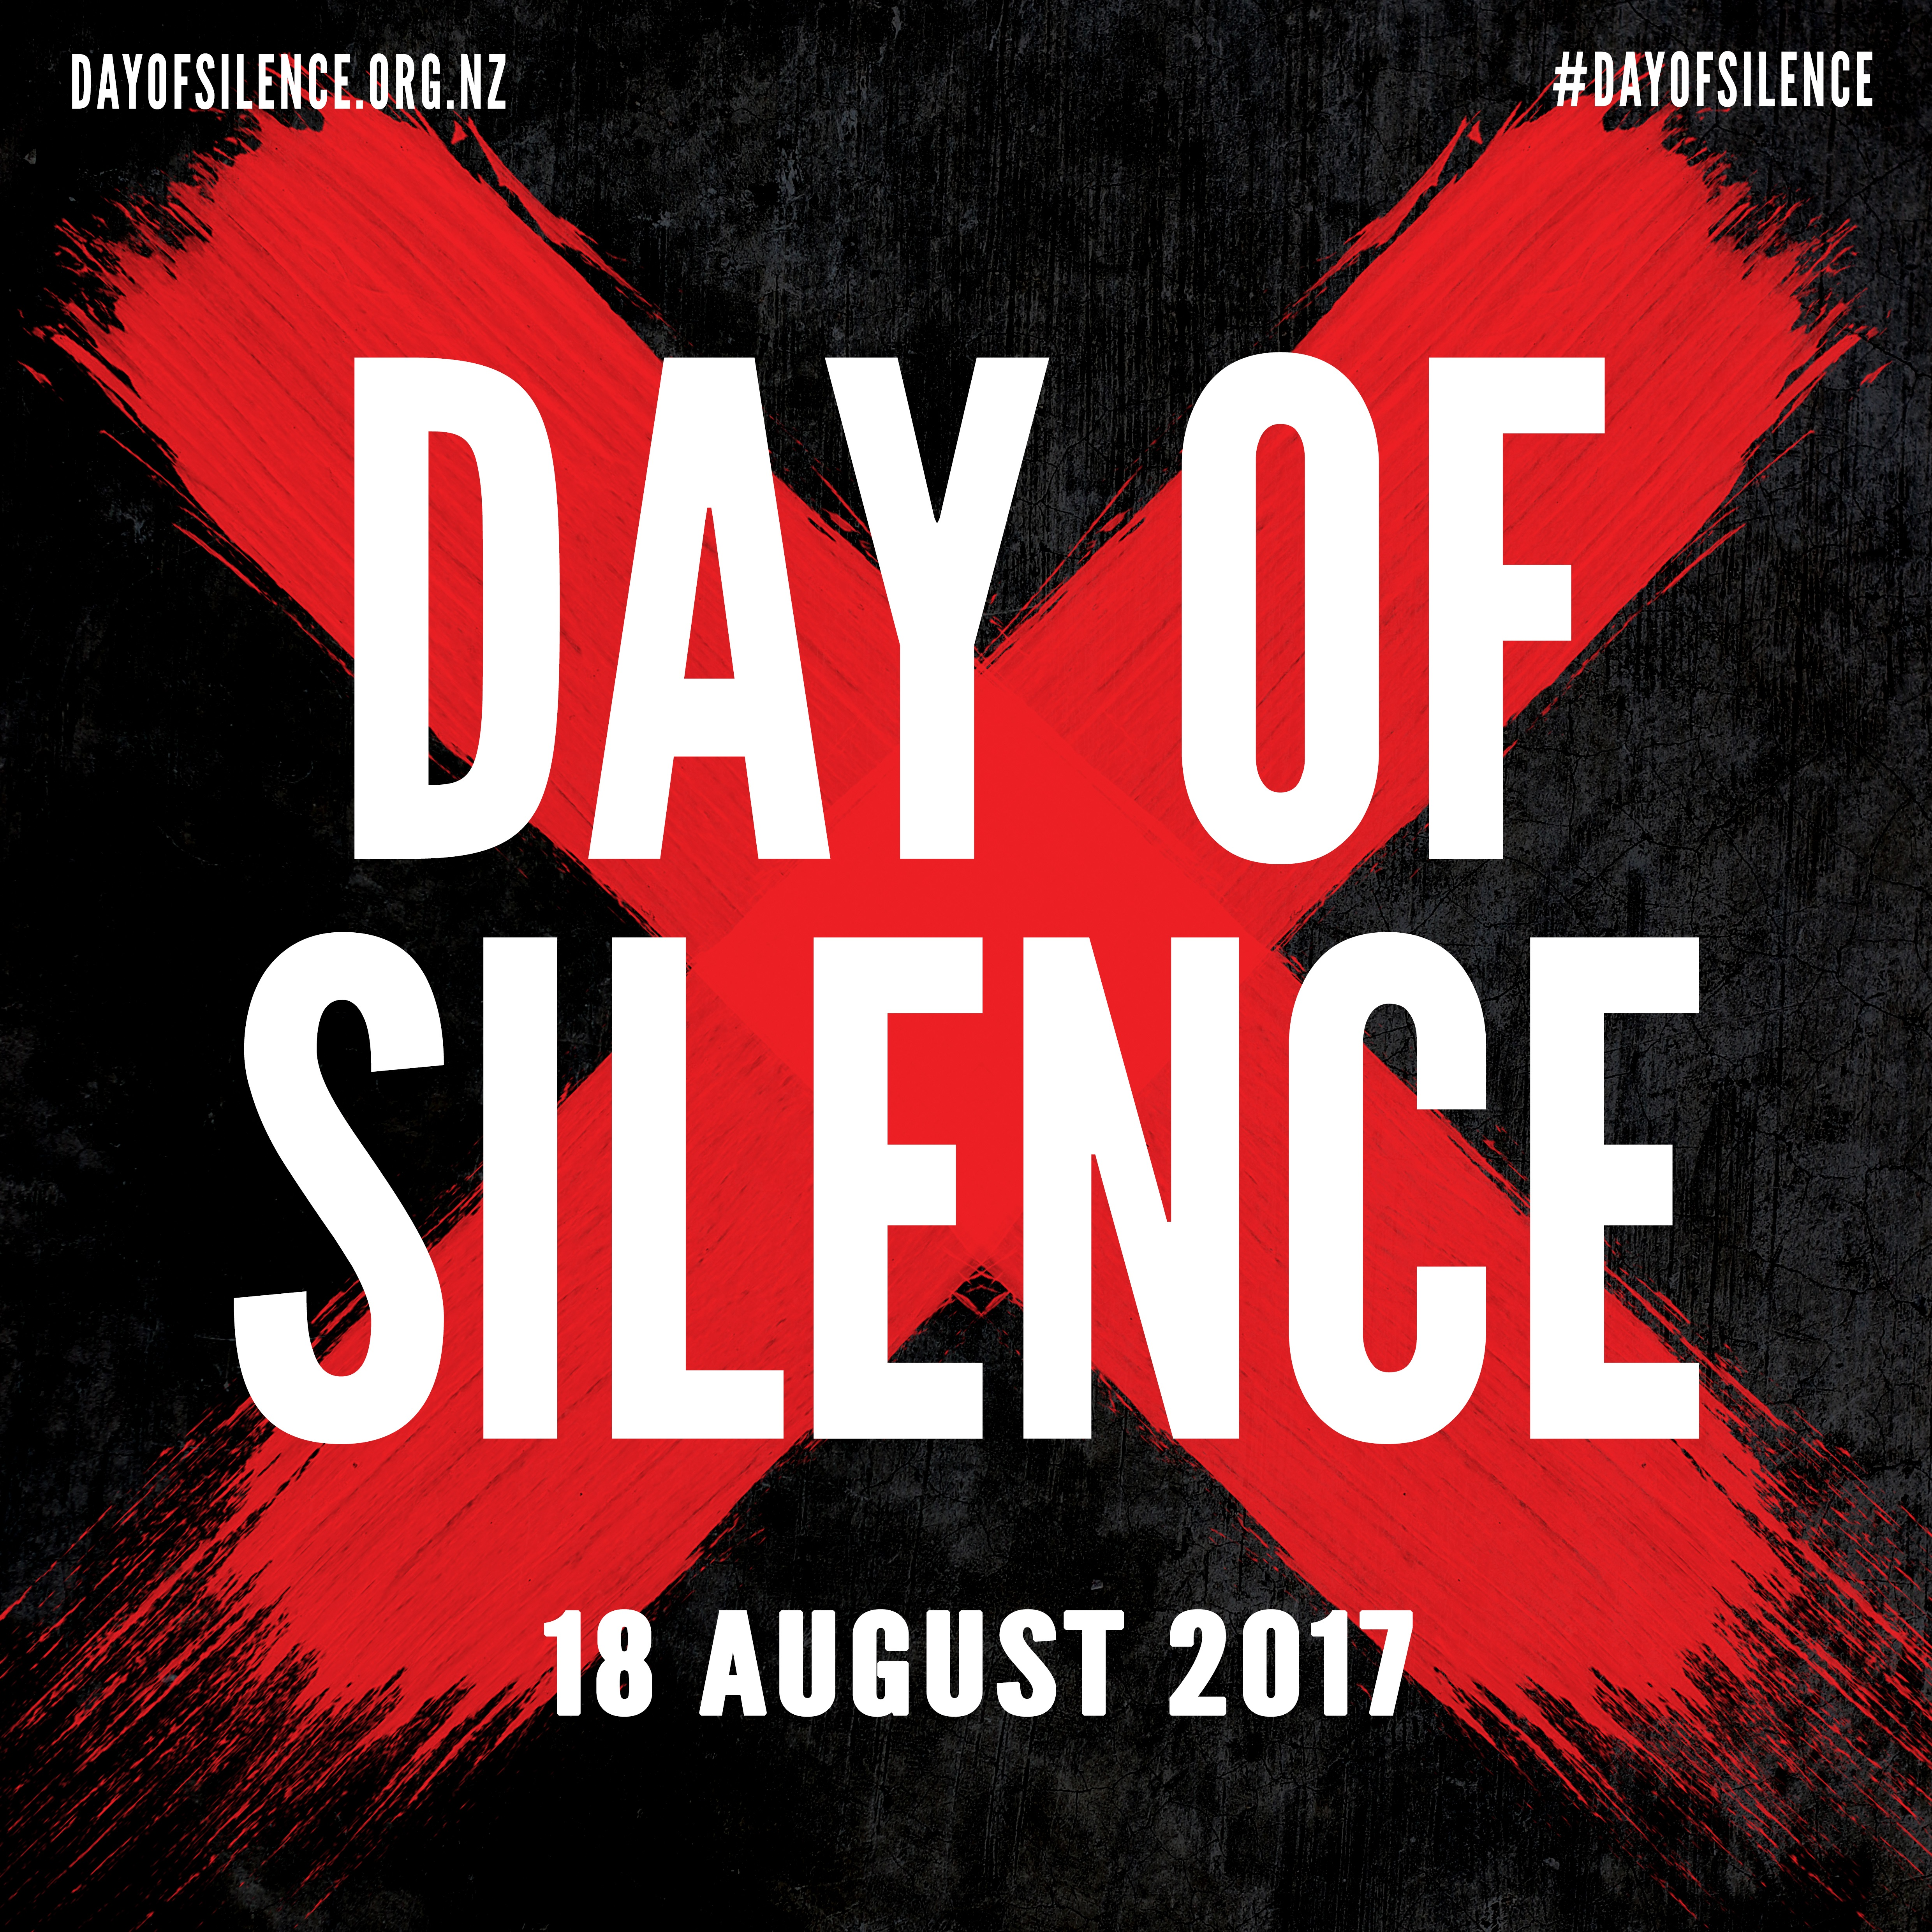 Day of Silence 2017